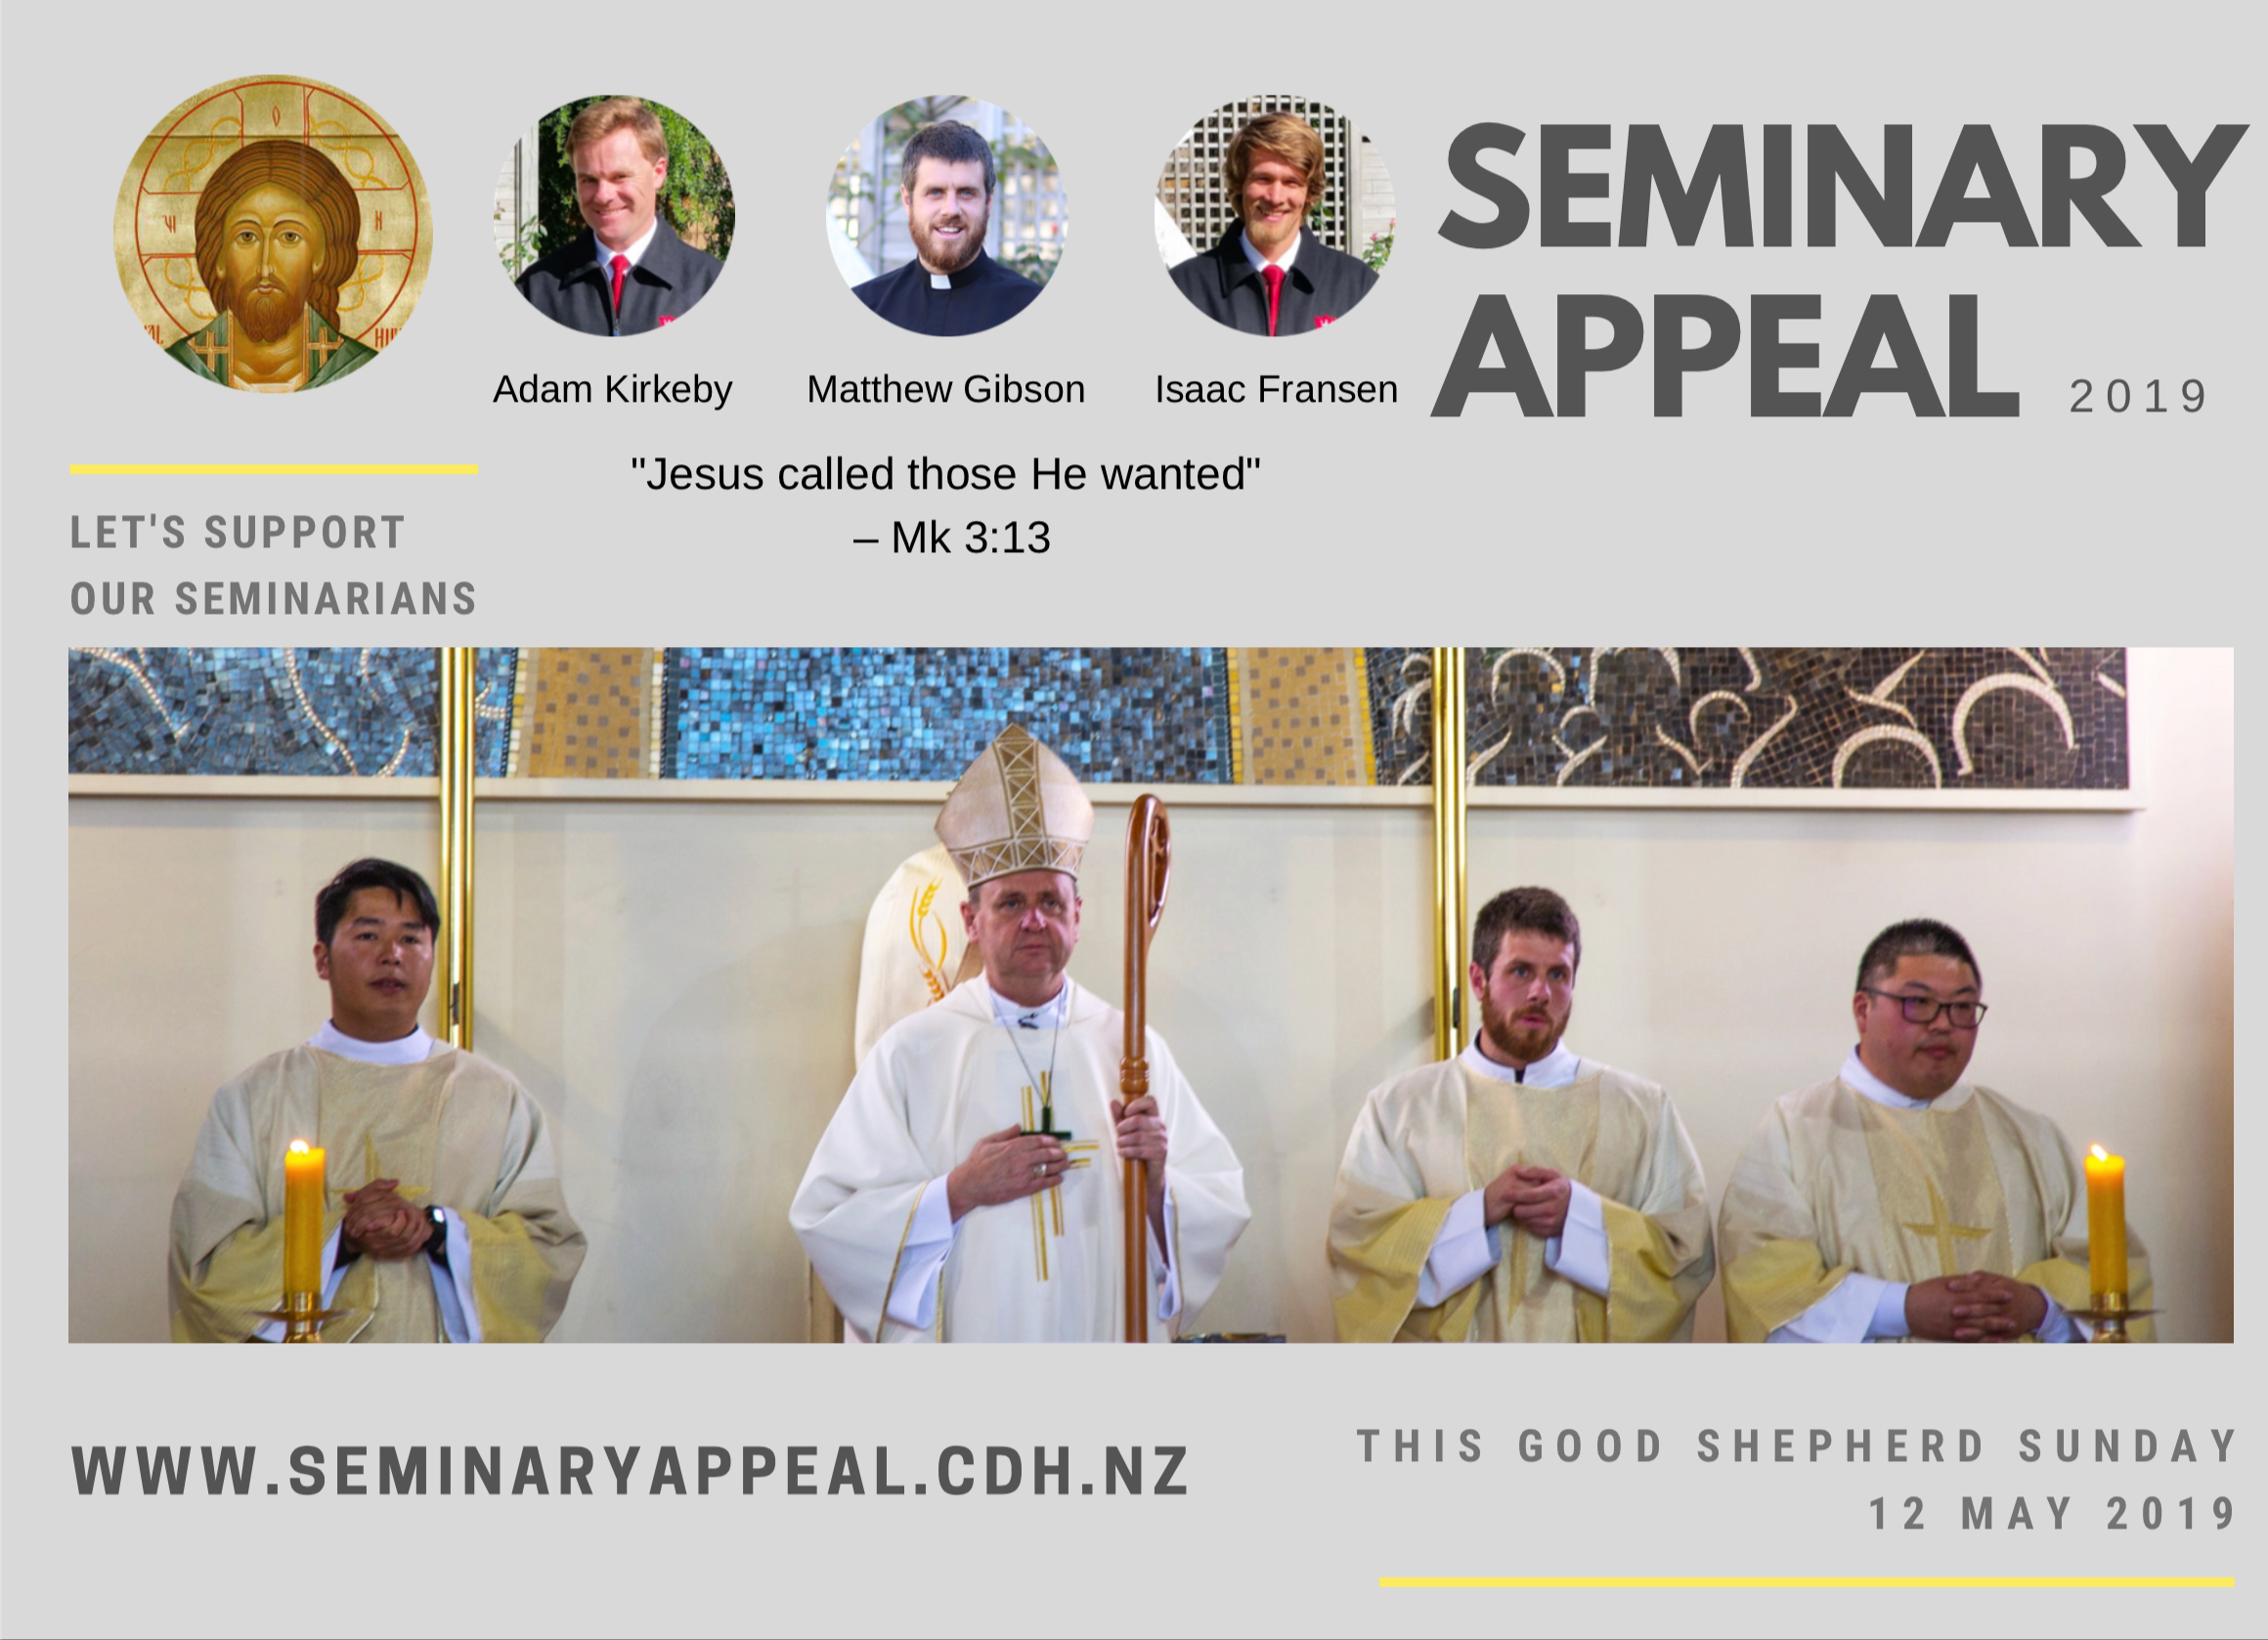 Seminary Appeal 2019